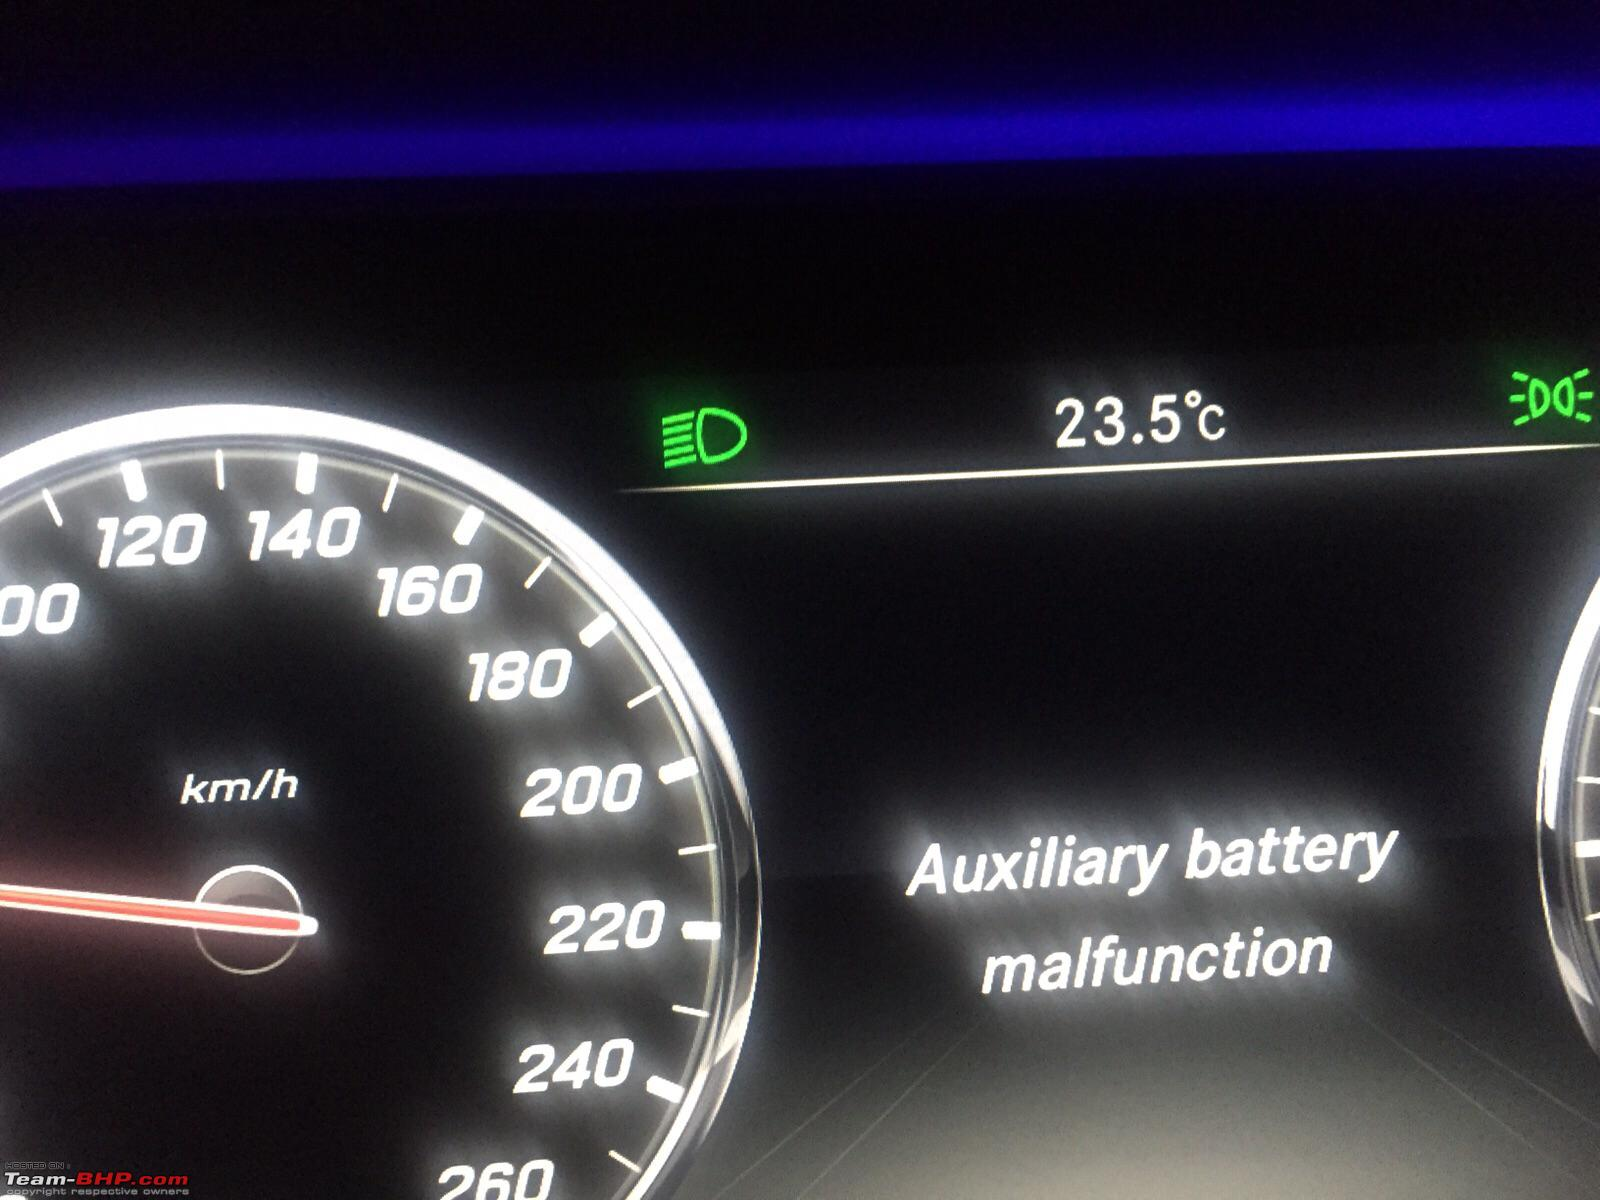 Auxiliary Battery Malfunction Mercedes >> My W222 Mercedes S Class S350 Cdi Page 5 Team Bhp